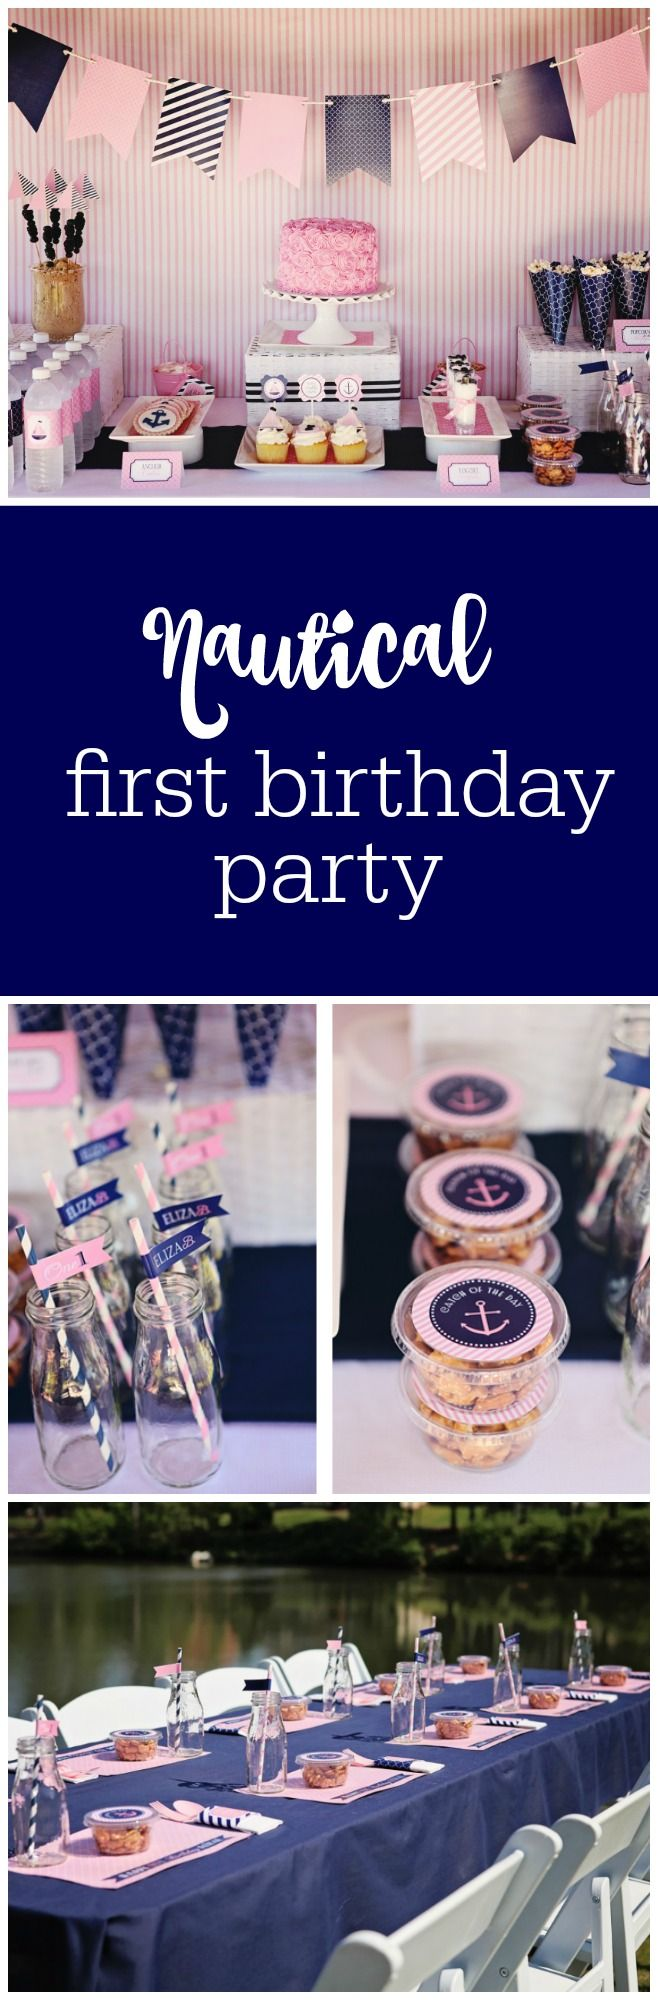 Nautical first birthday party by Sweet Peach Paperie featured on The Party Teacher